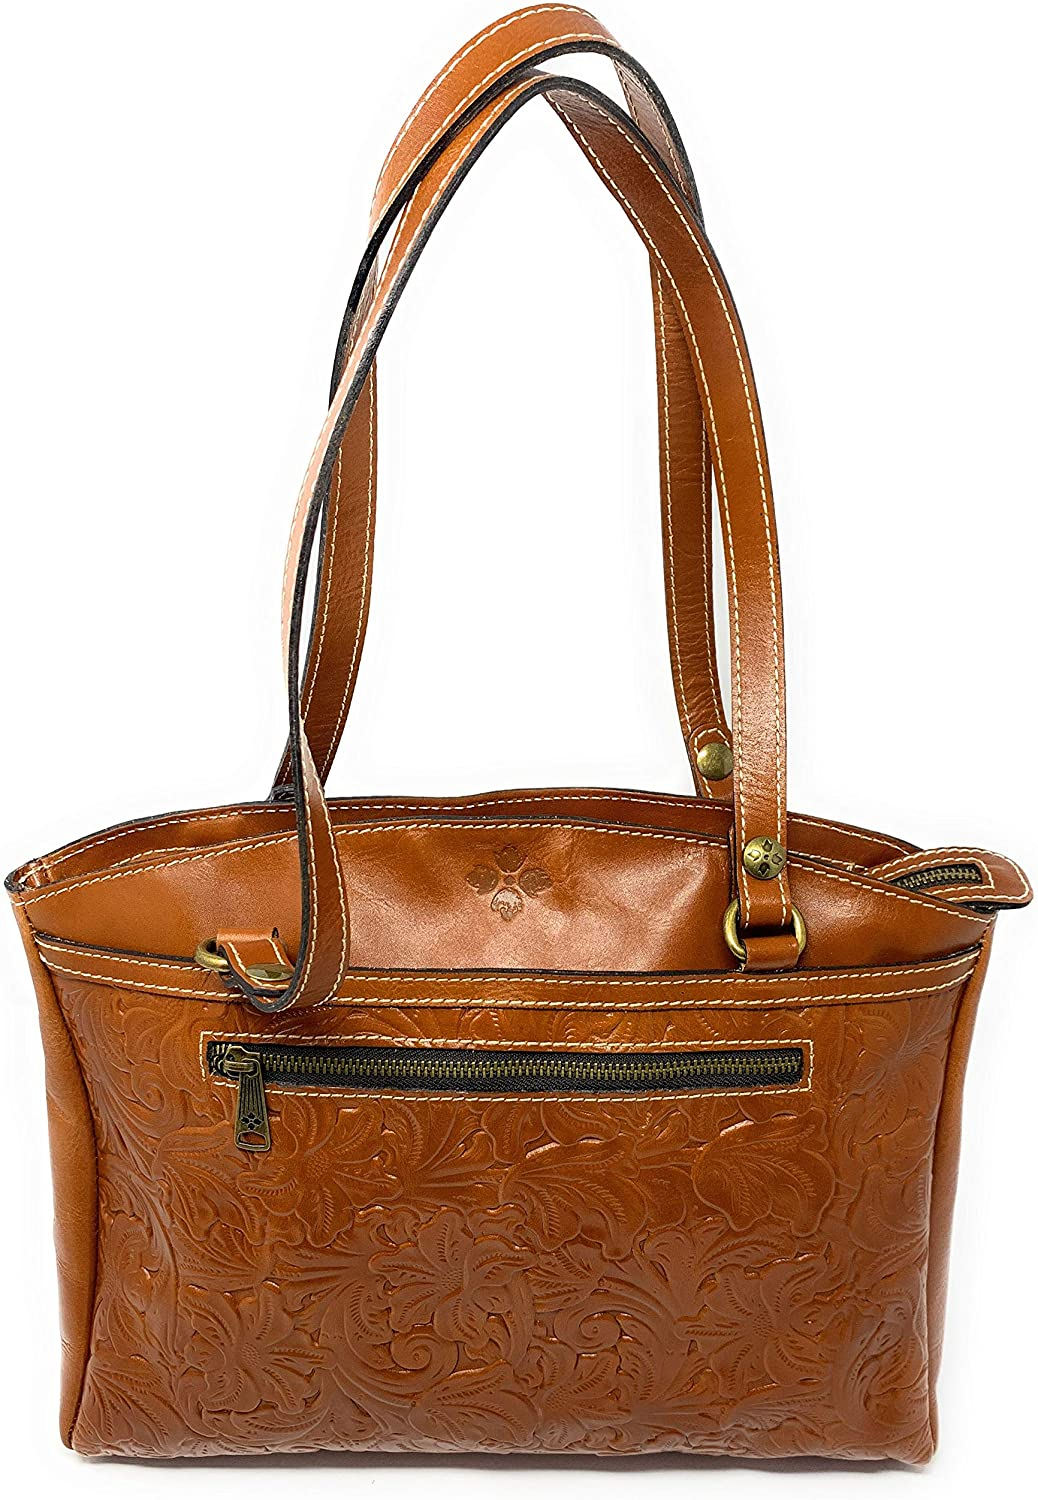 Patricia Nash Poppy Tote Tooled Purse Handbag lowest price New color Leather